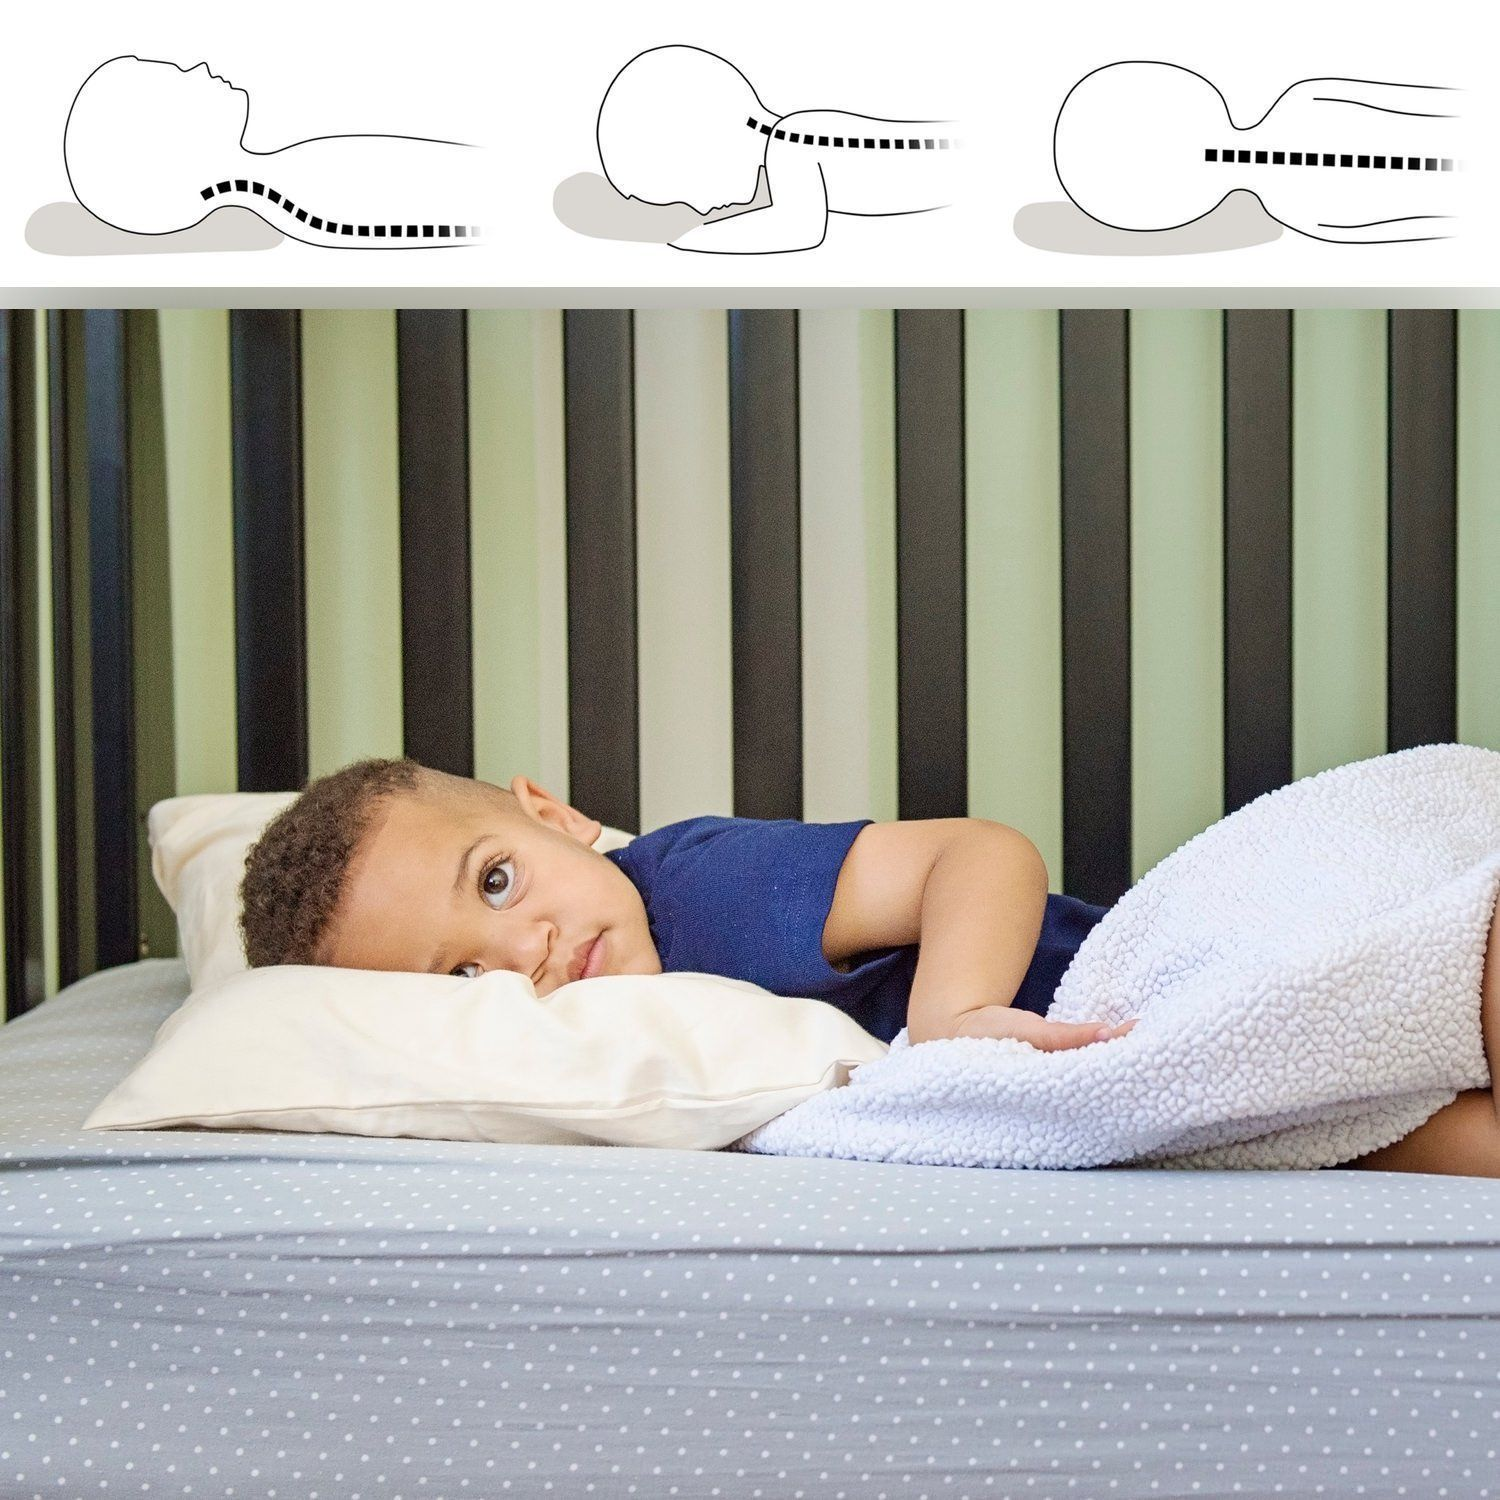 Home remodel plans little ones pillow toddler pillow